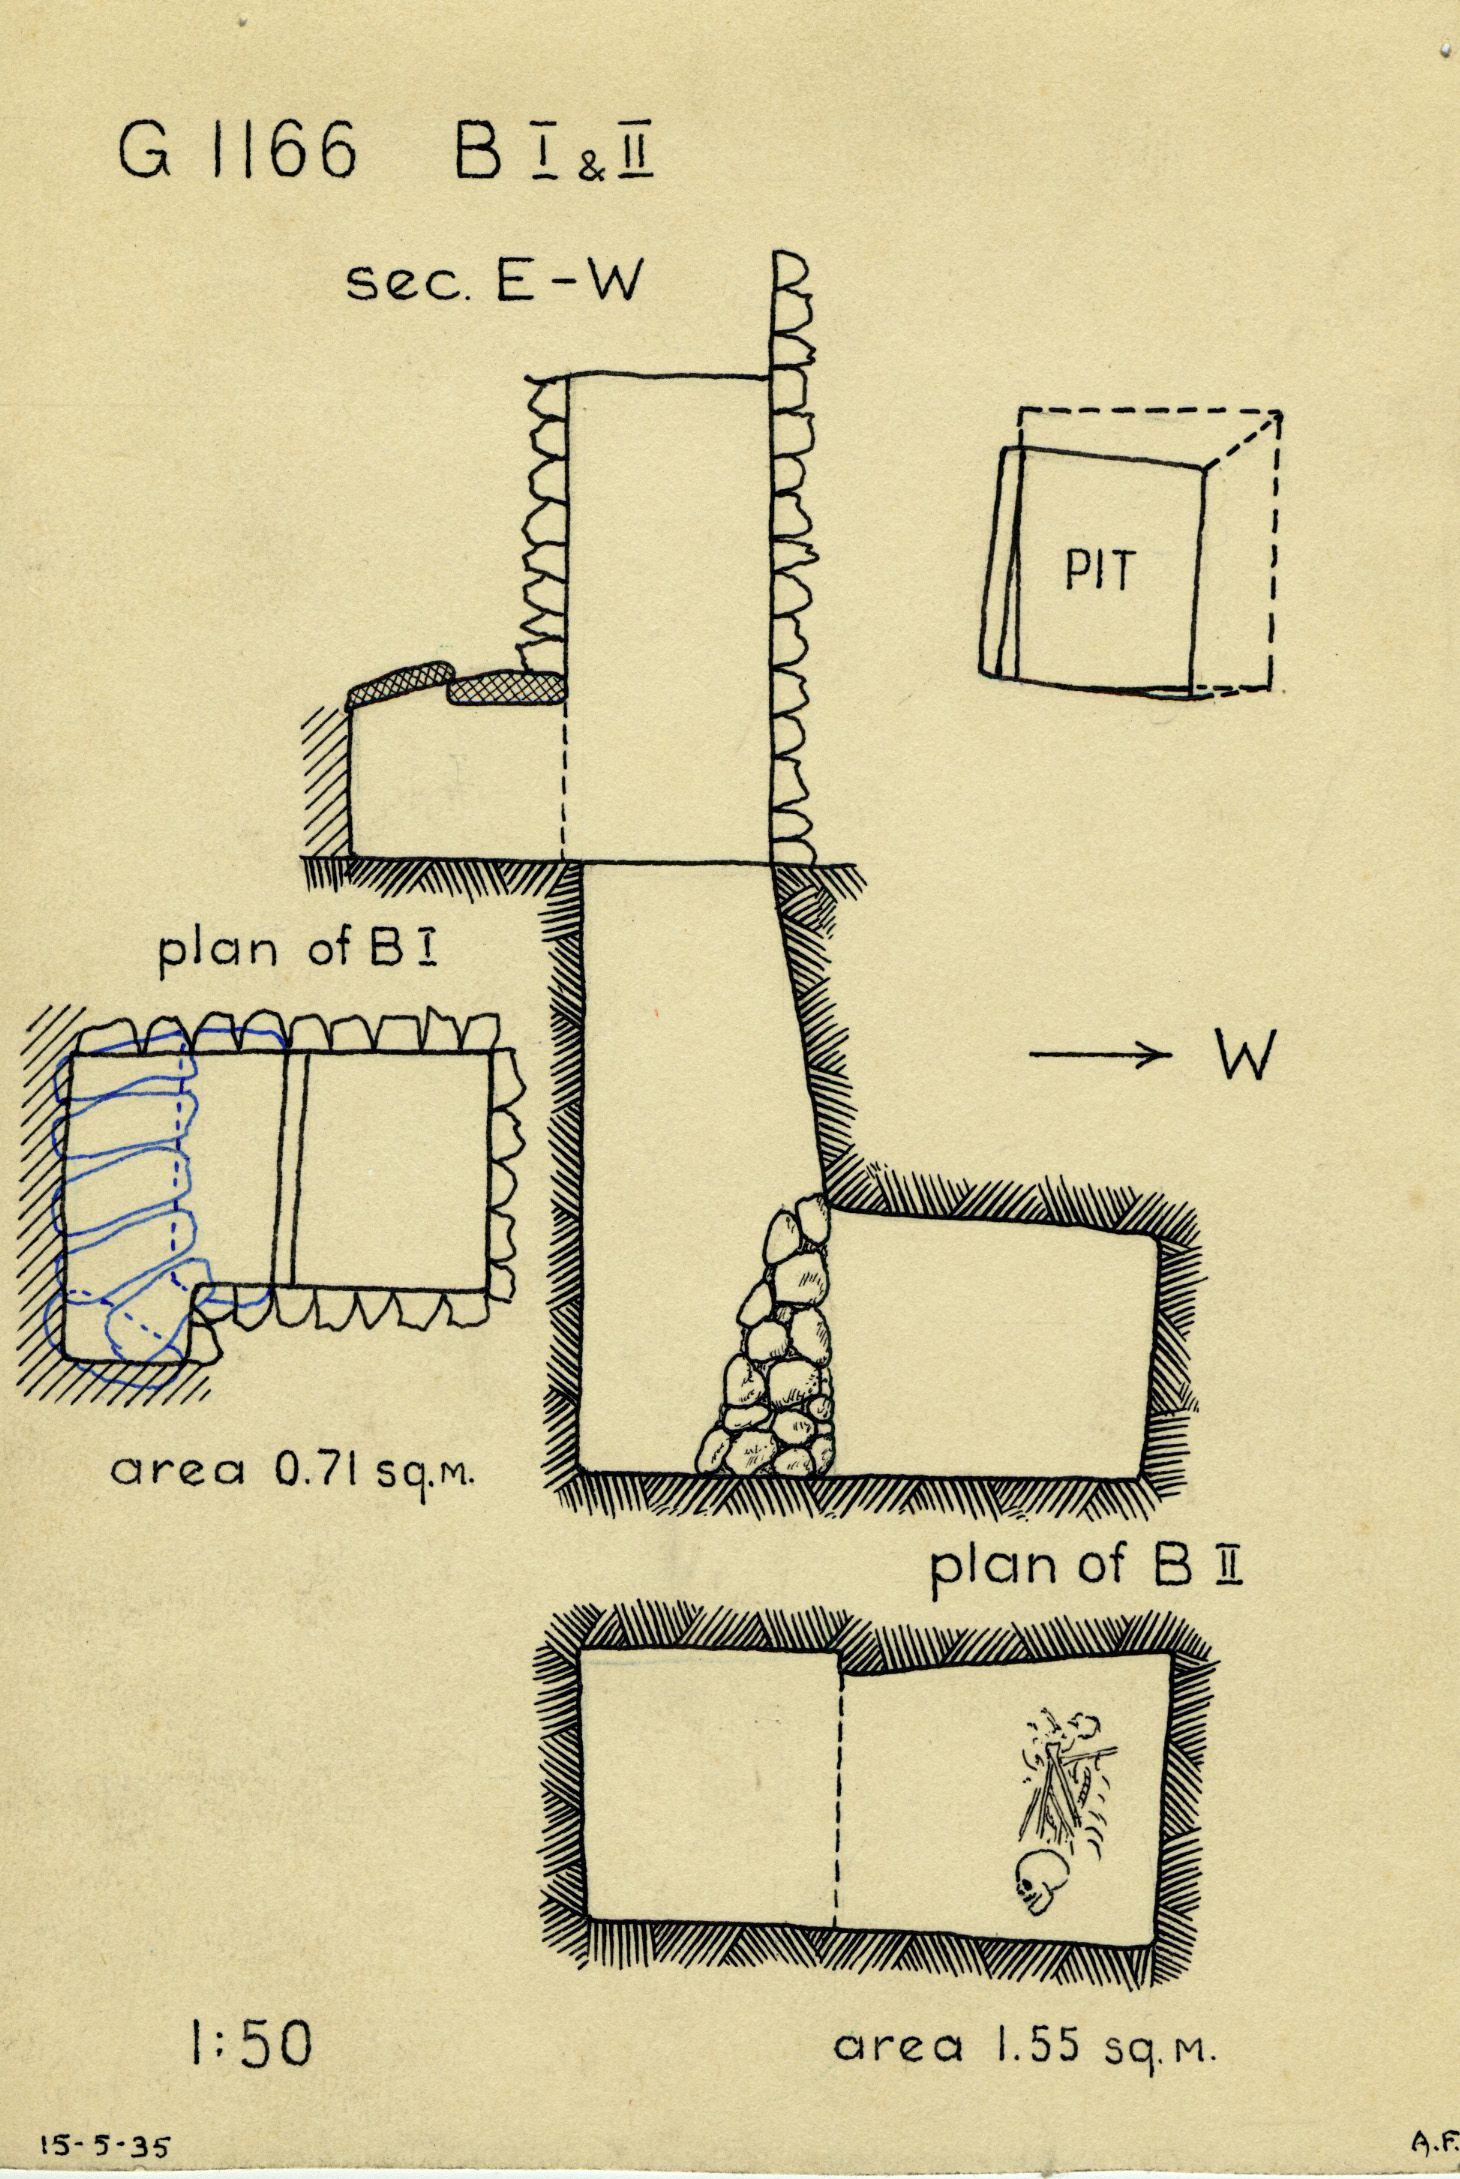 Maps and plans: G 1163+1166: G 1166, Shaft B